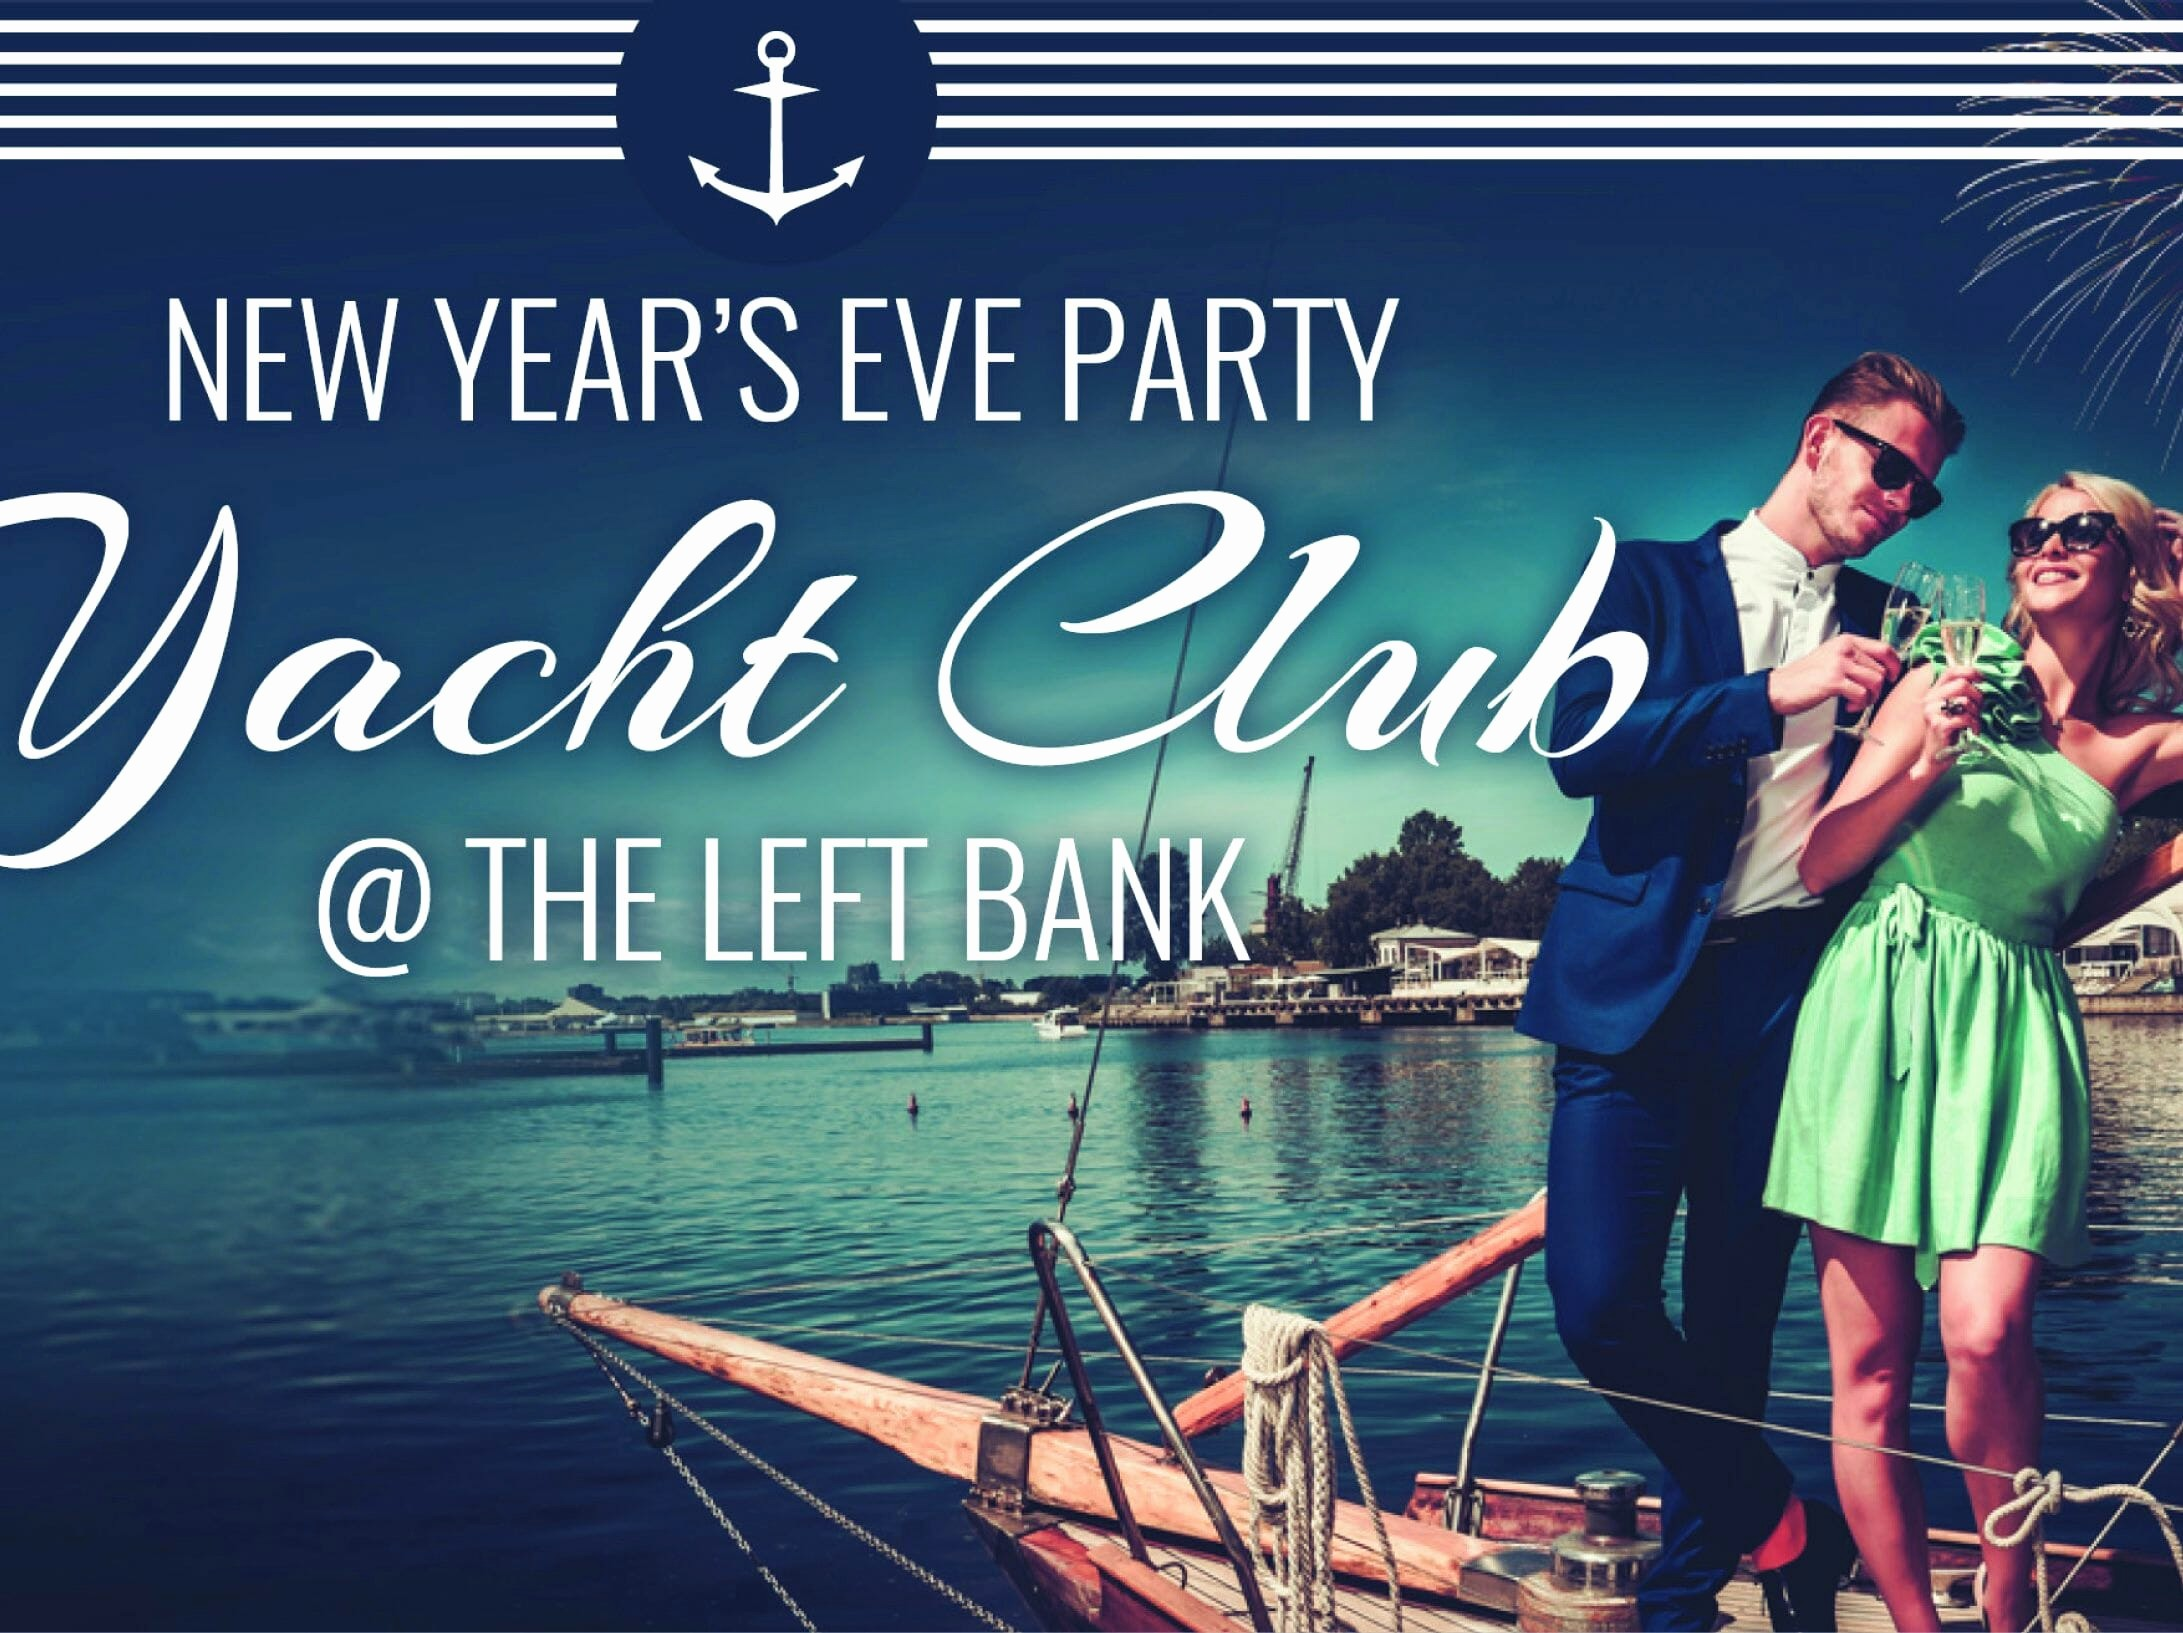 New Years Eve Party Checklist Fresh New Years Eve 2015 16 'yacht Club' Party